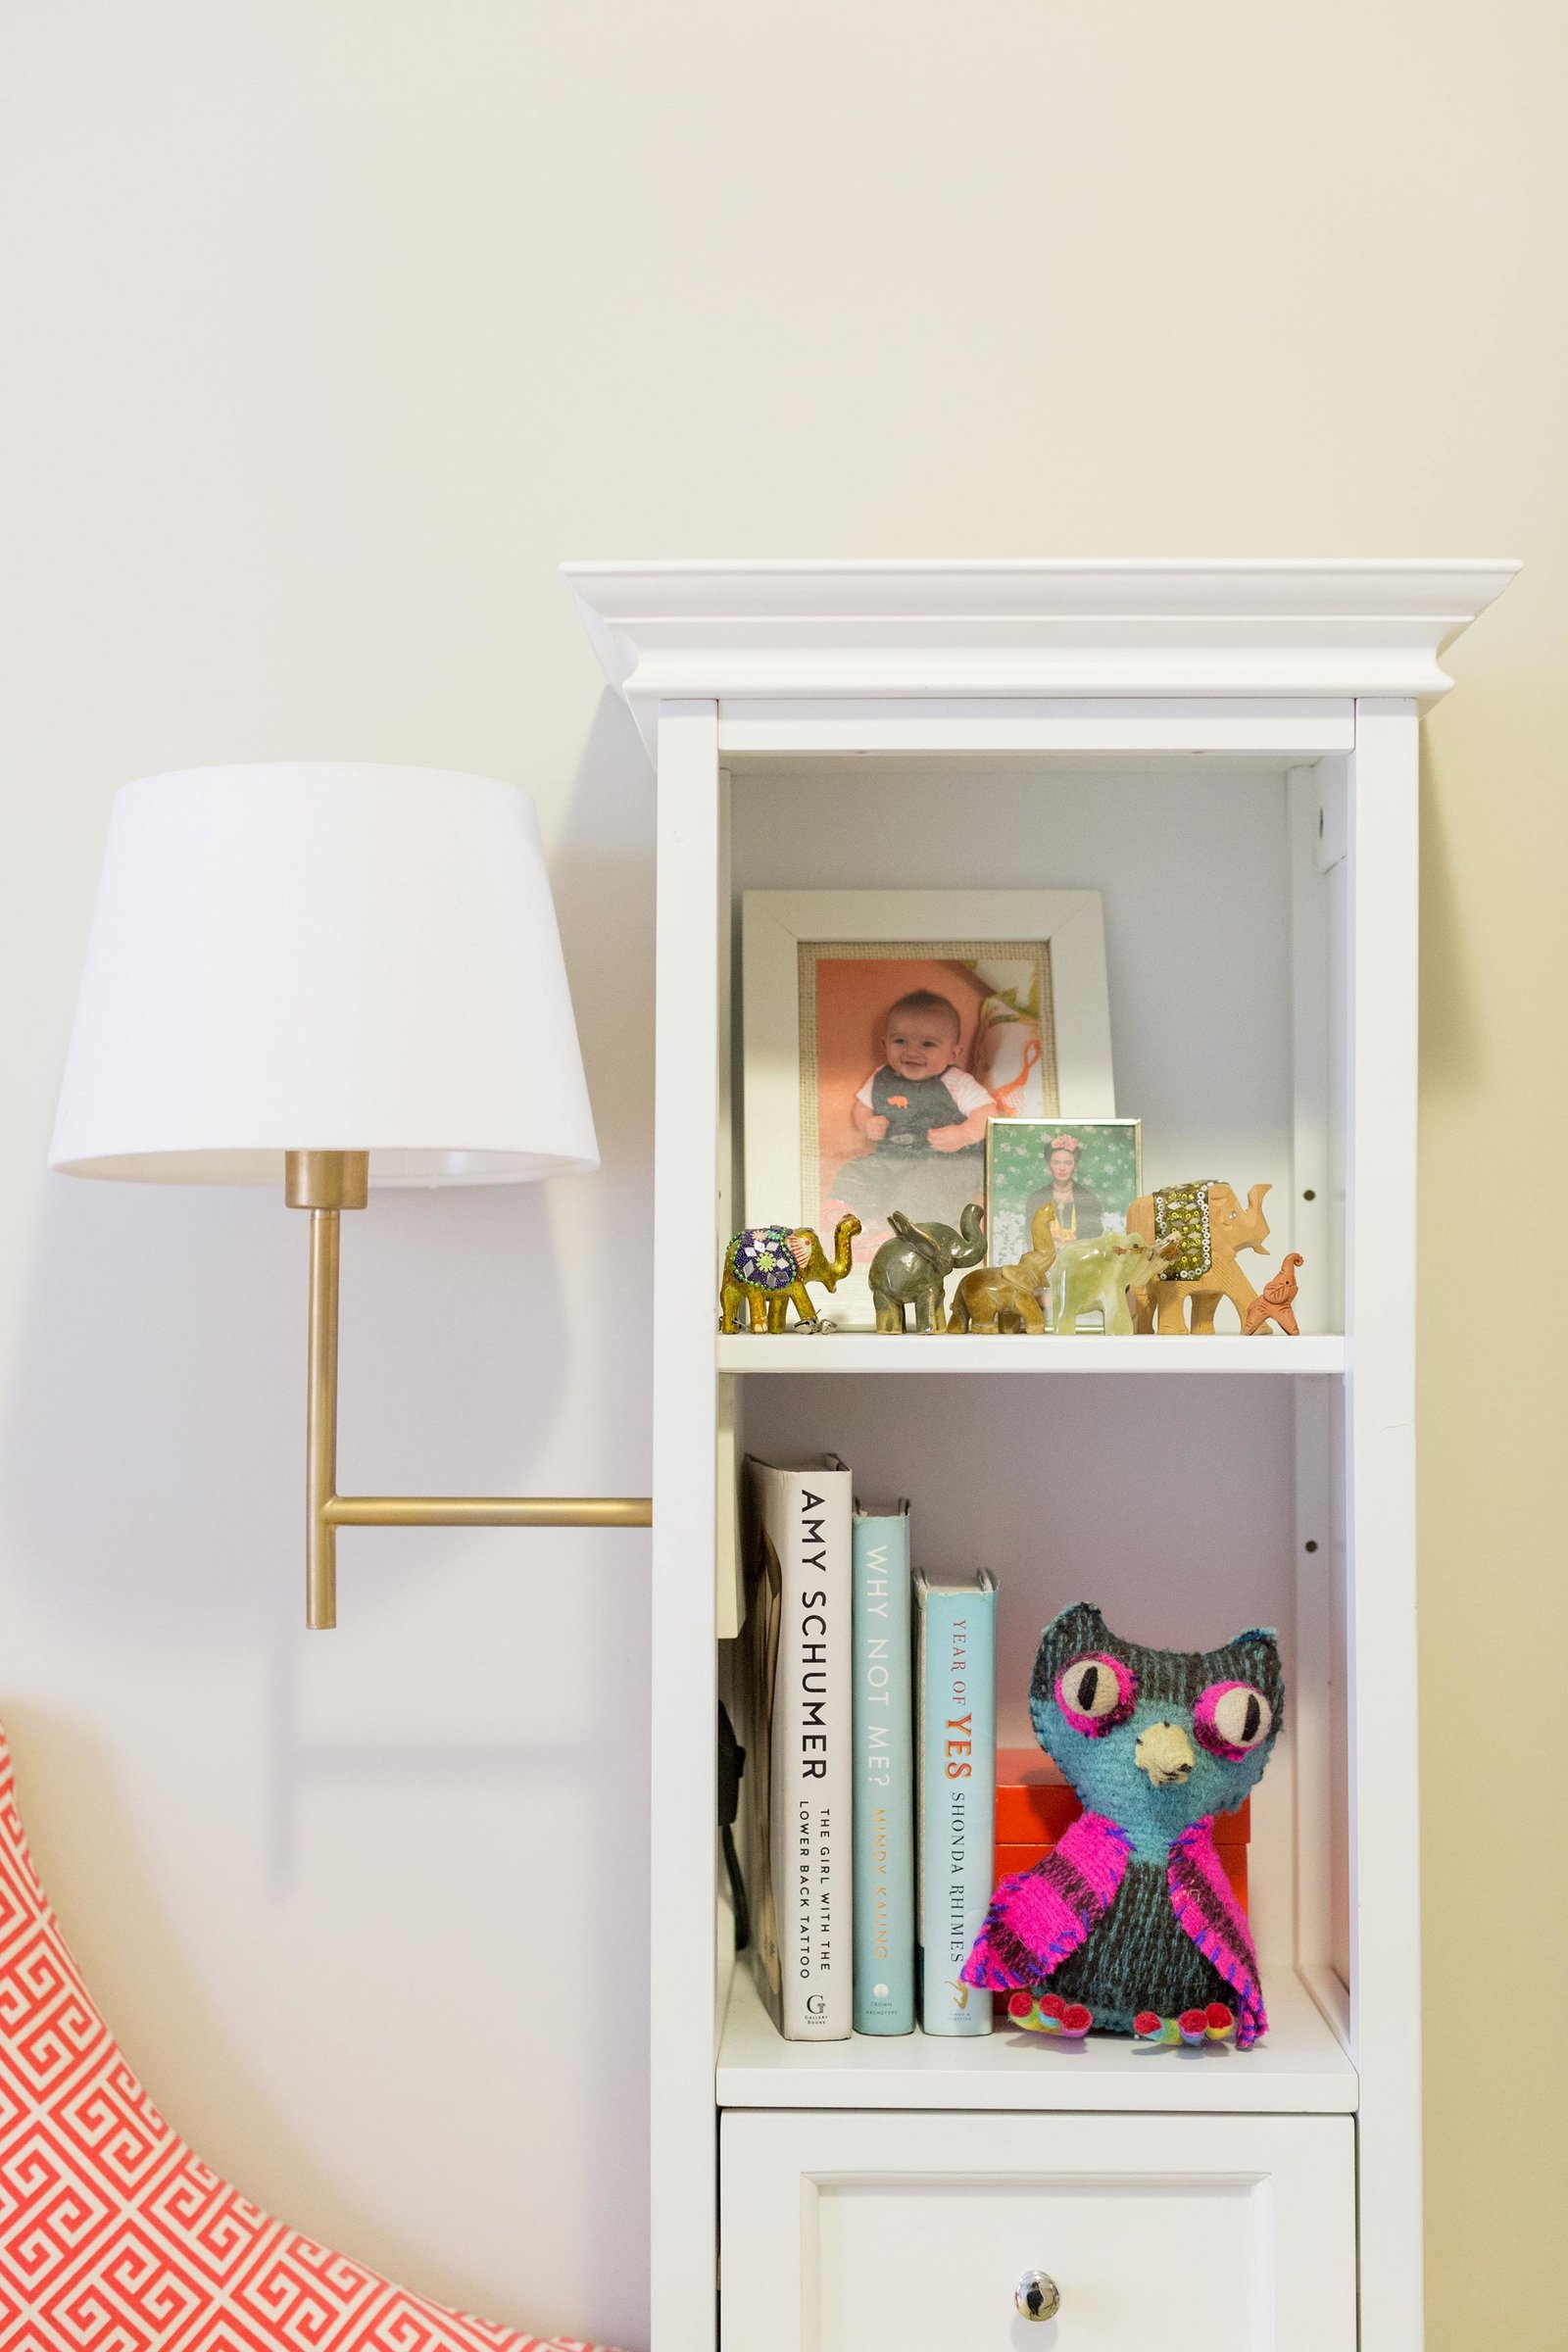 A bookcase with a gold sconce with white shade attached.